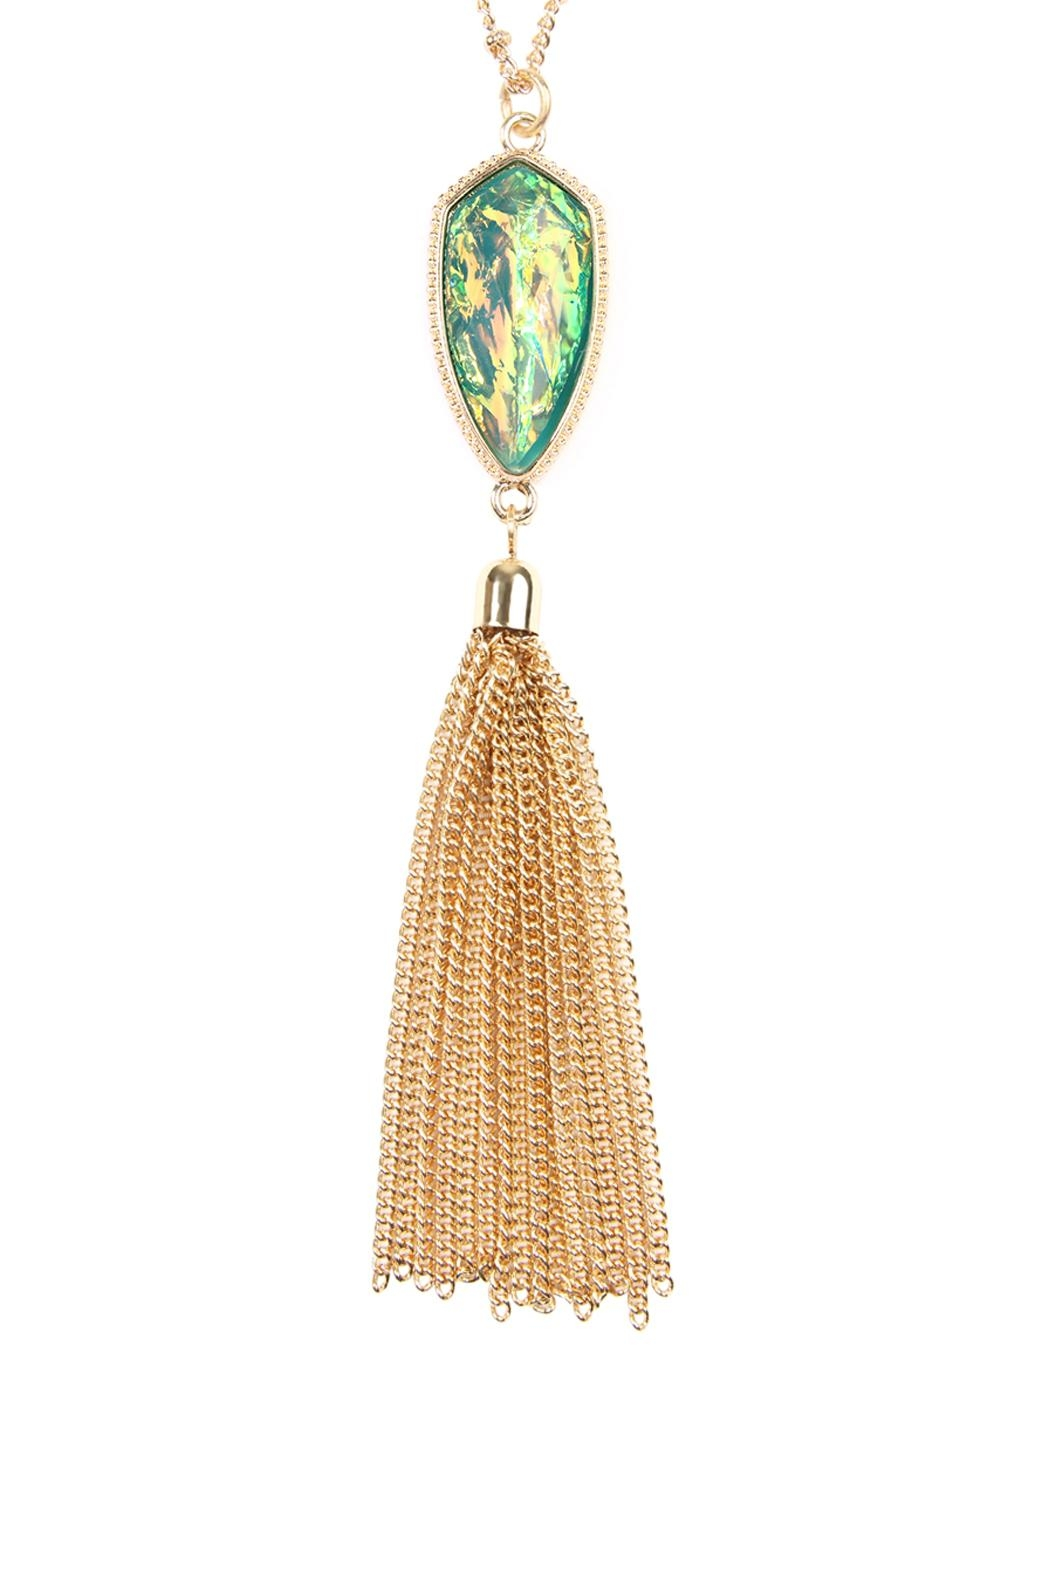 Riah Fashion Chain-Tassel-Necklace And Stud-Earrings-Set - Front Full Image